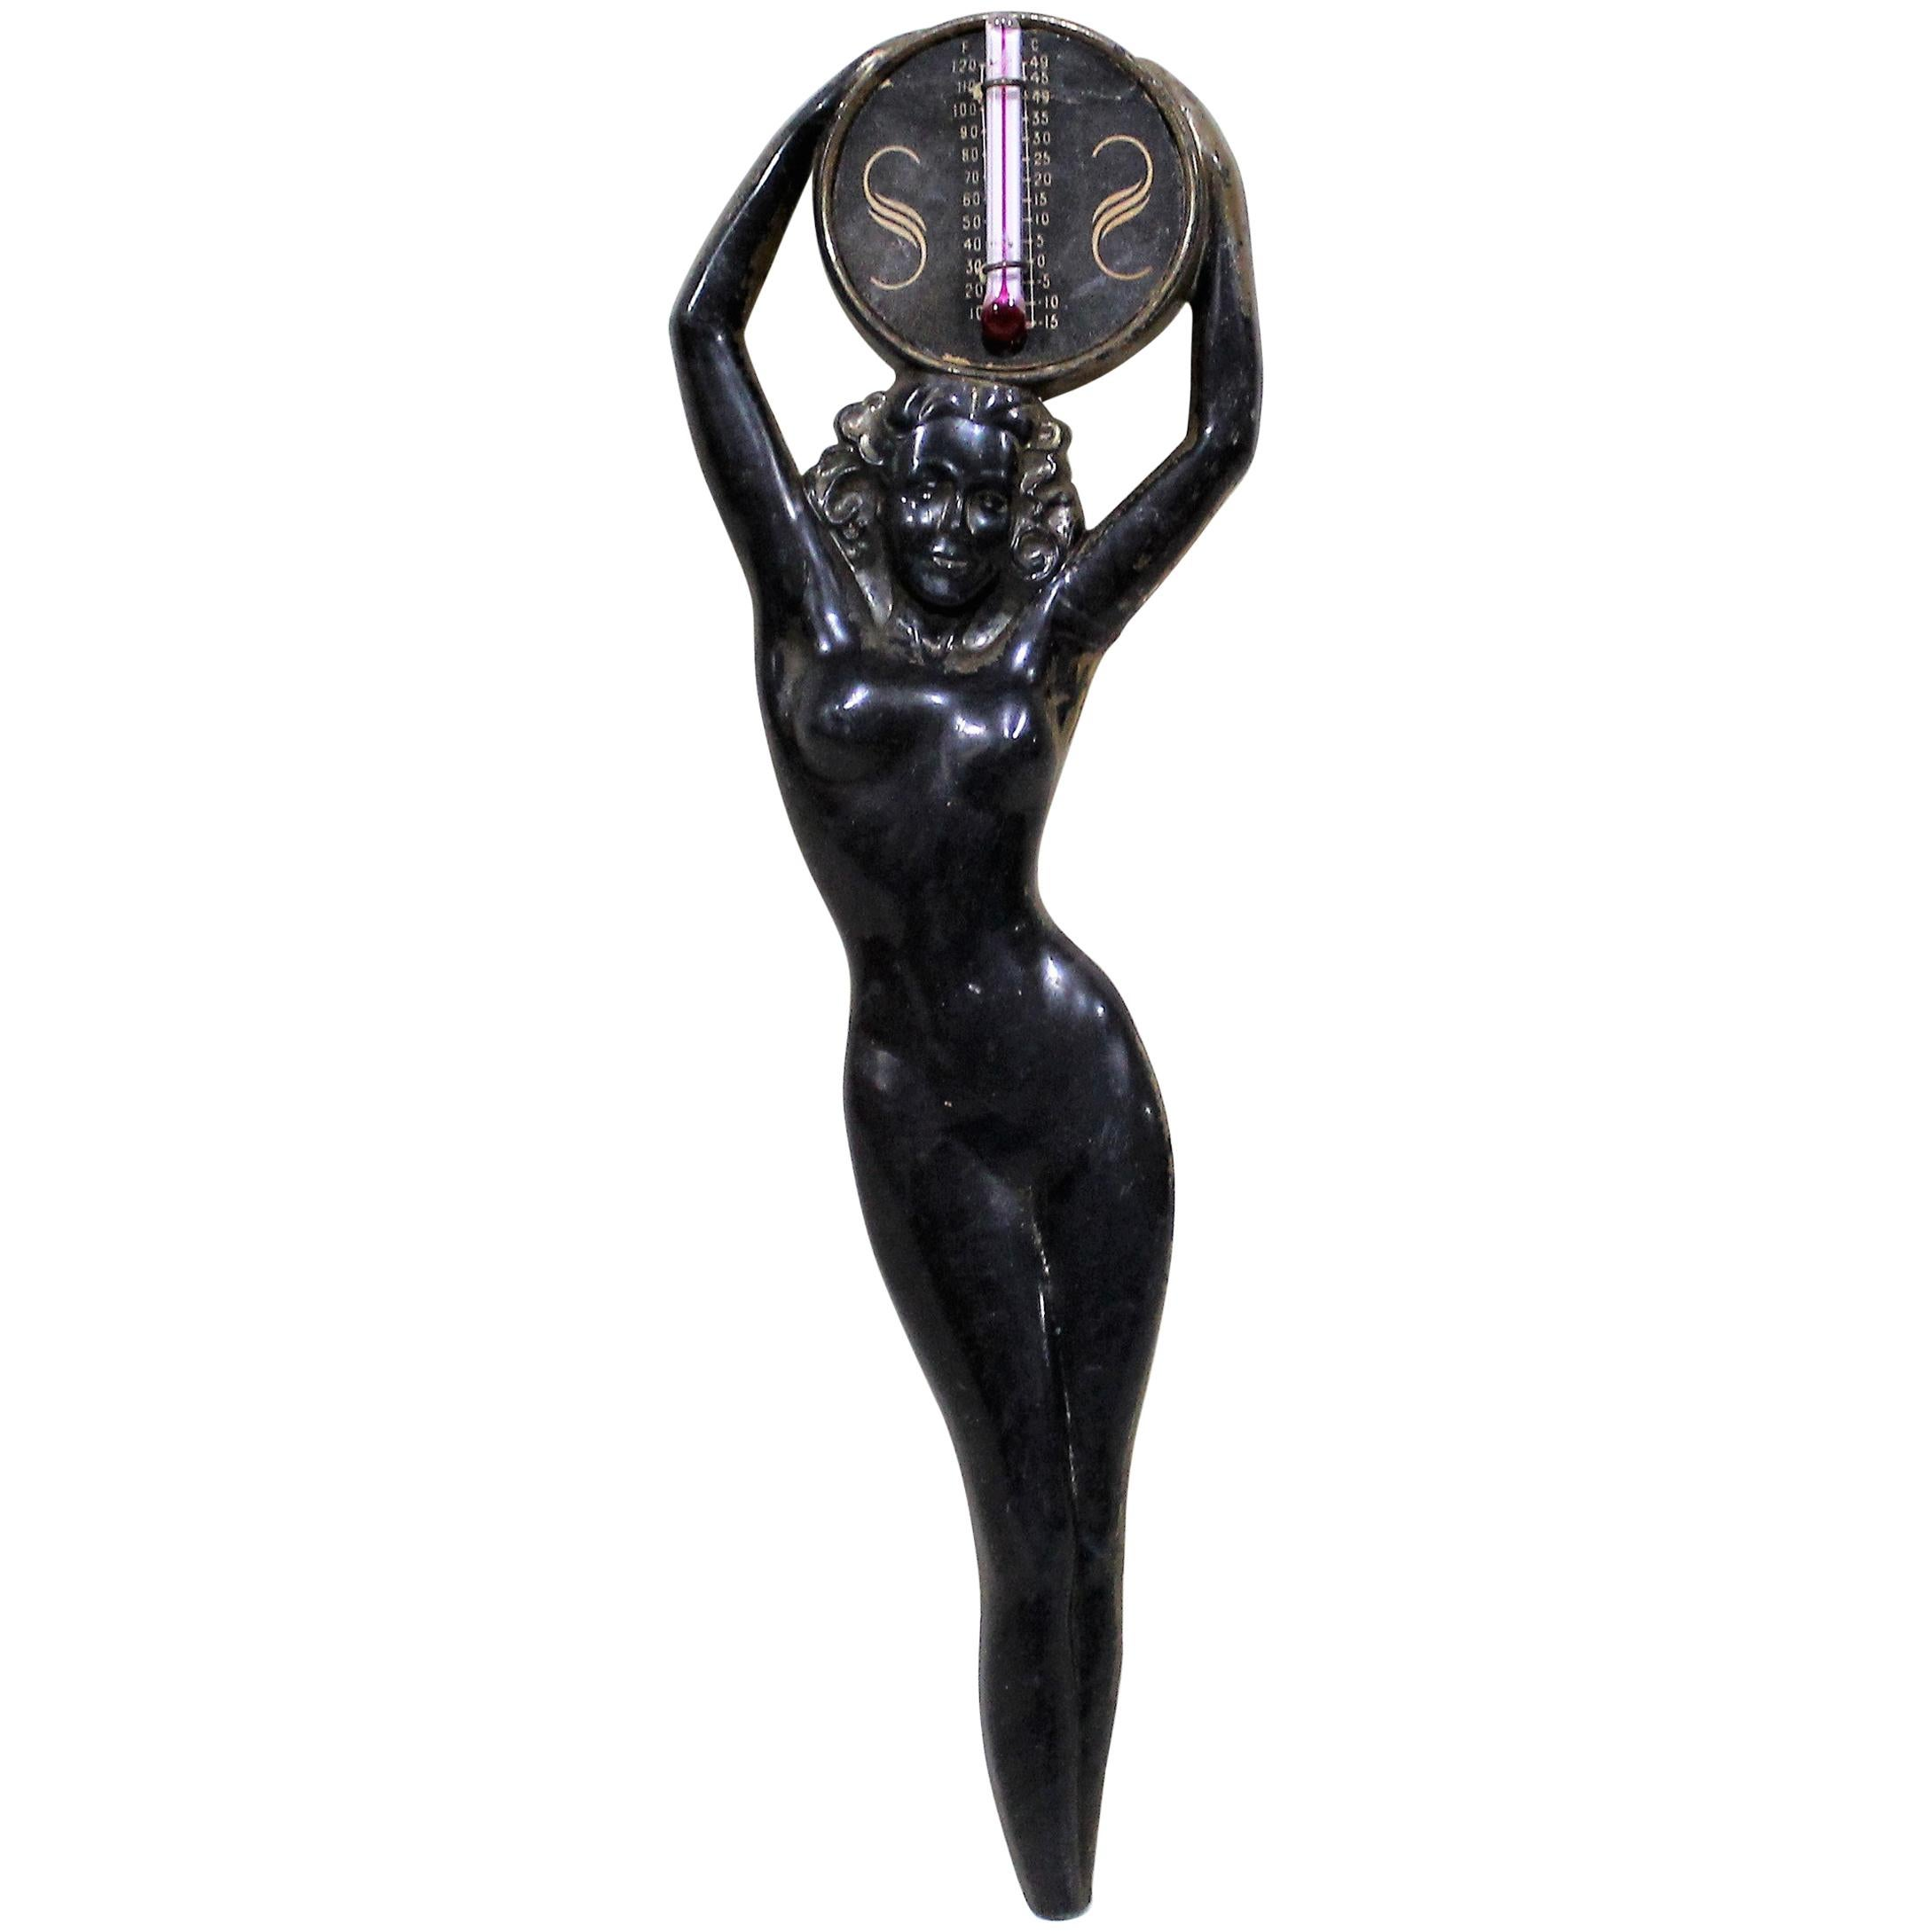 Art Deco Nudy Lady Thermometer